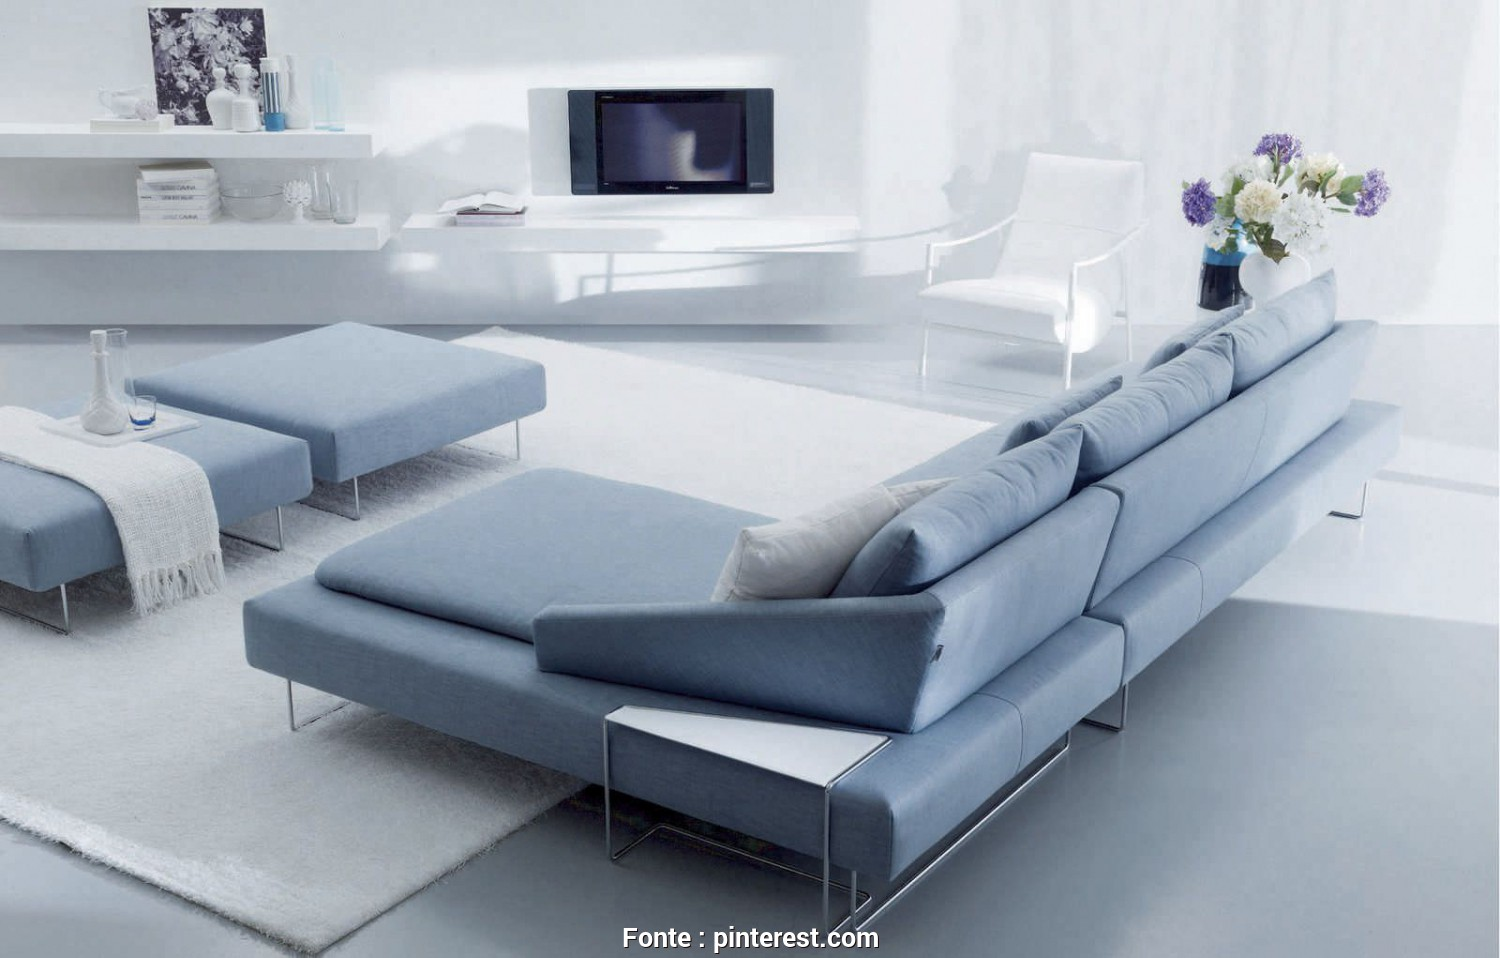 Divani Bontempi Itaca Prezzo, Casuale Corner Sofa /, / Contemporary / Fabric ITACA BONTEMPI DIVANI, Sofa, Sofa, Furniture Ve Corner Sofa